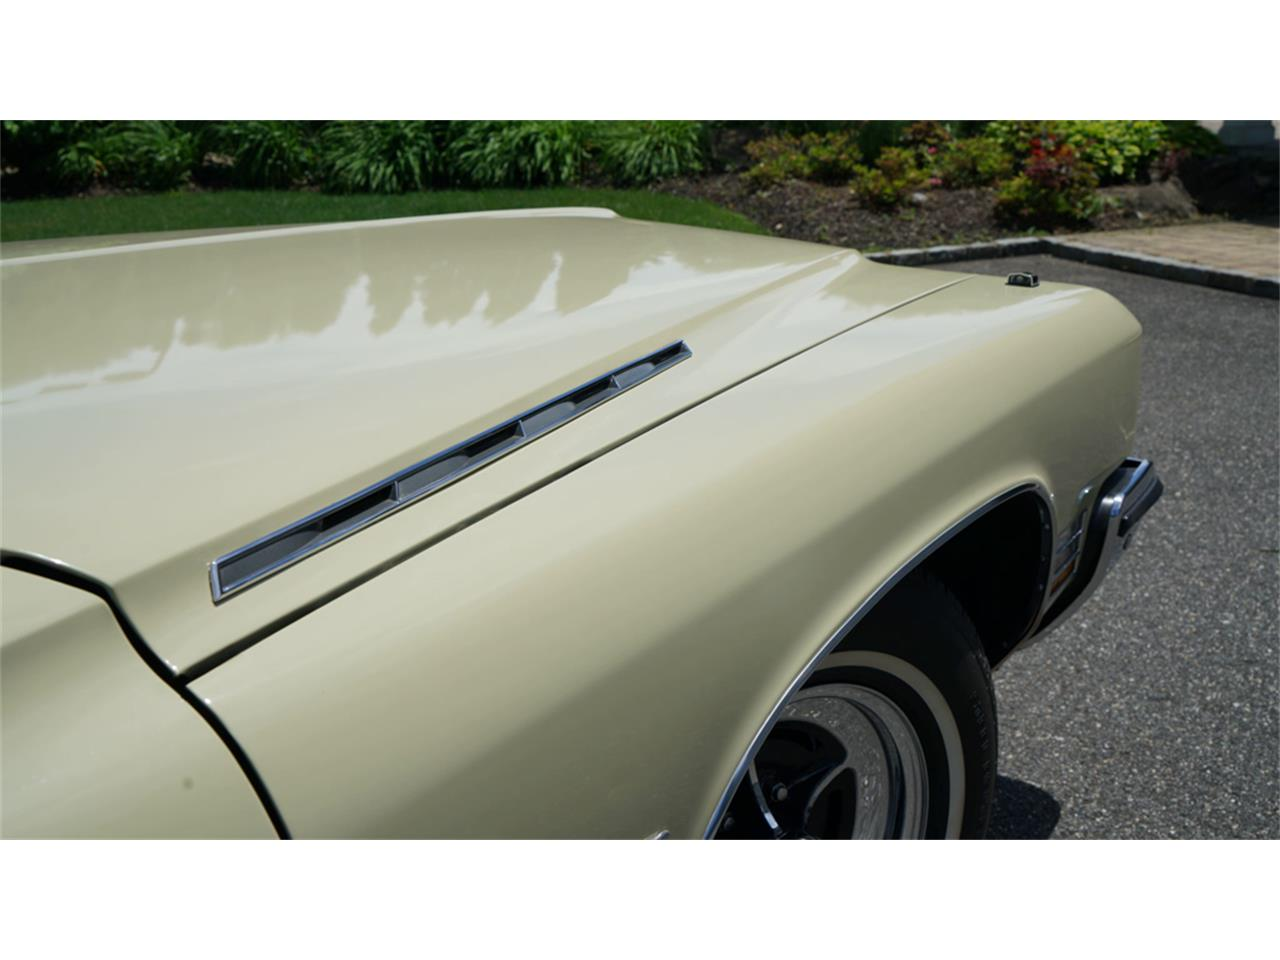 Large Picture of '72 Buick Electra 225 located in New York Offered by Fiore Motor Classics - QAJE